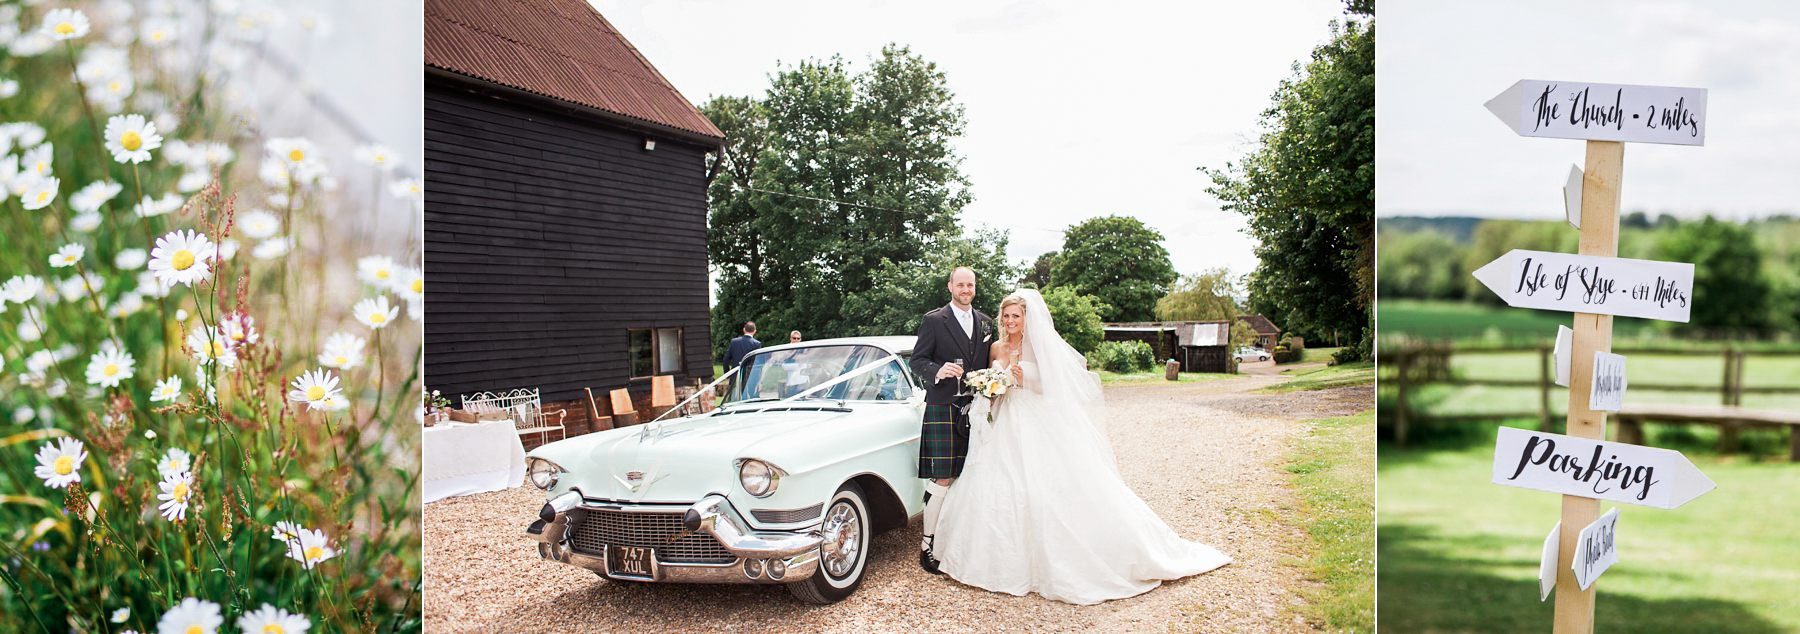 Hampshire Wedding Photography Lilybean Photography Vintage Wedding Fine Art Bonhams Barn07